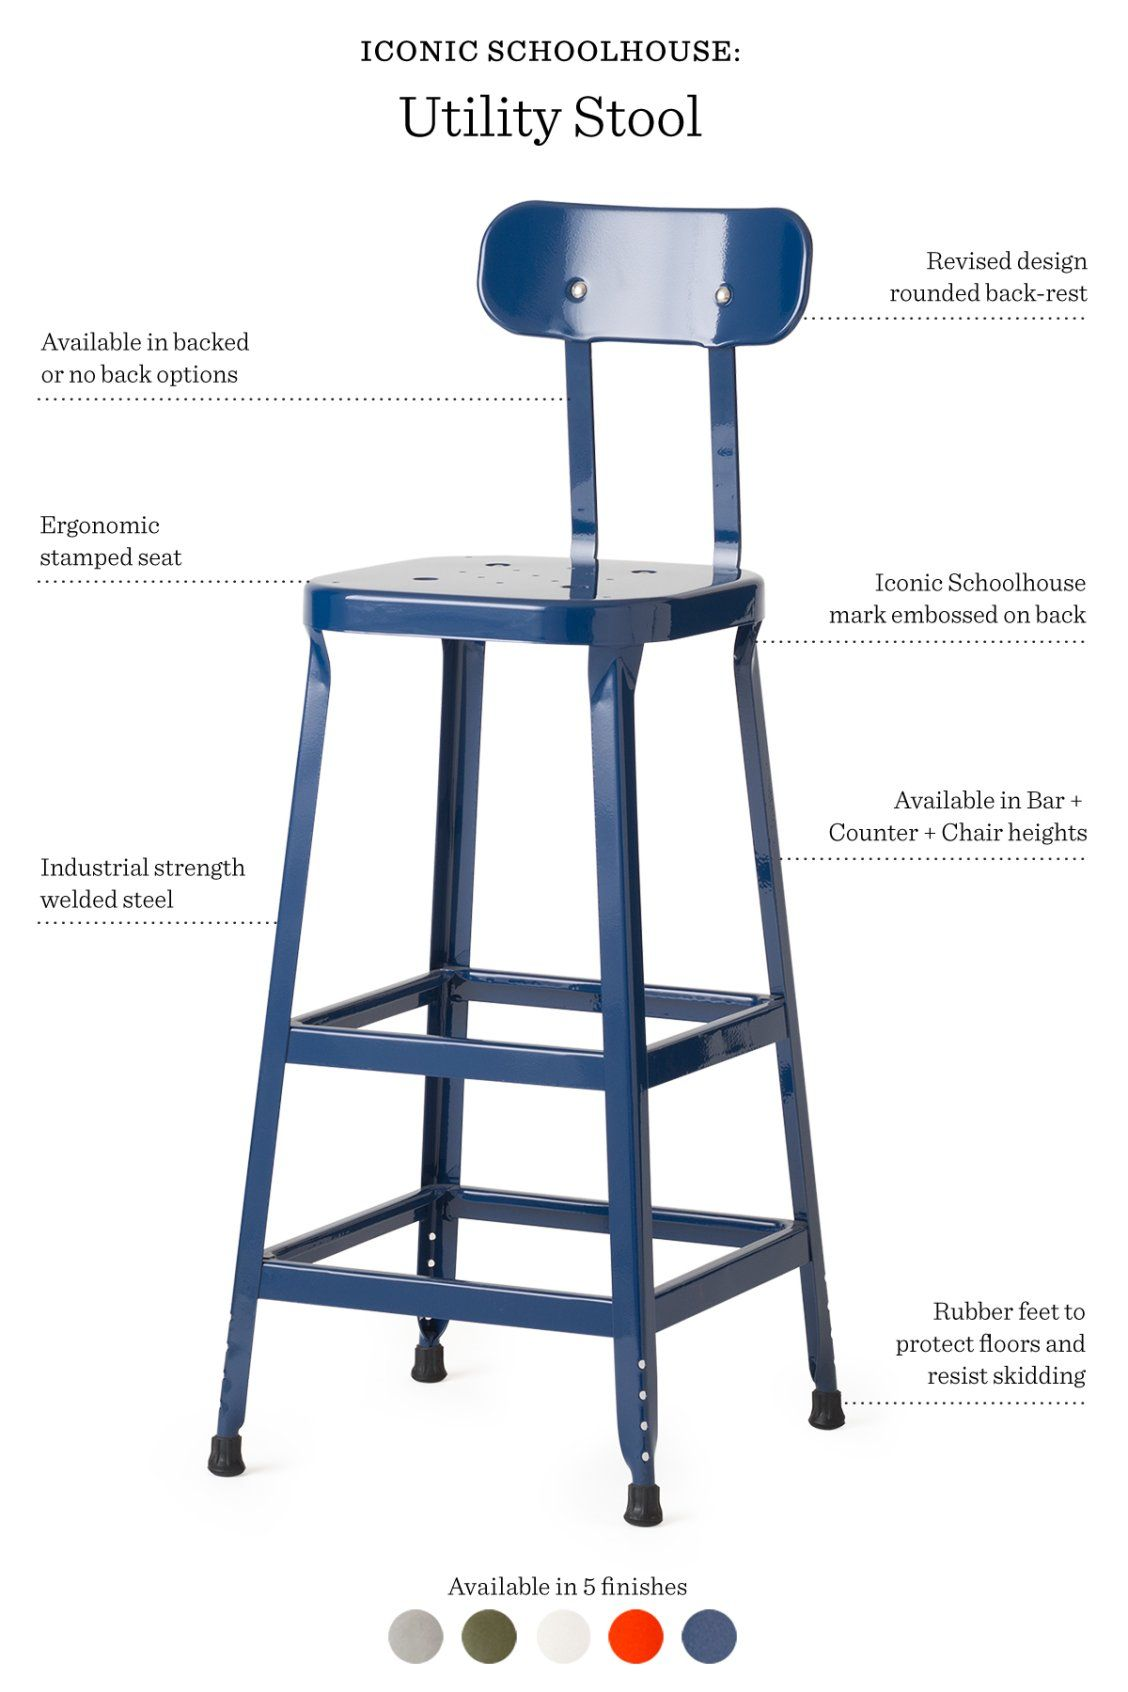 Cheap Stools Iconic Schoolhouse Utility Stool Interior Modern Chairs